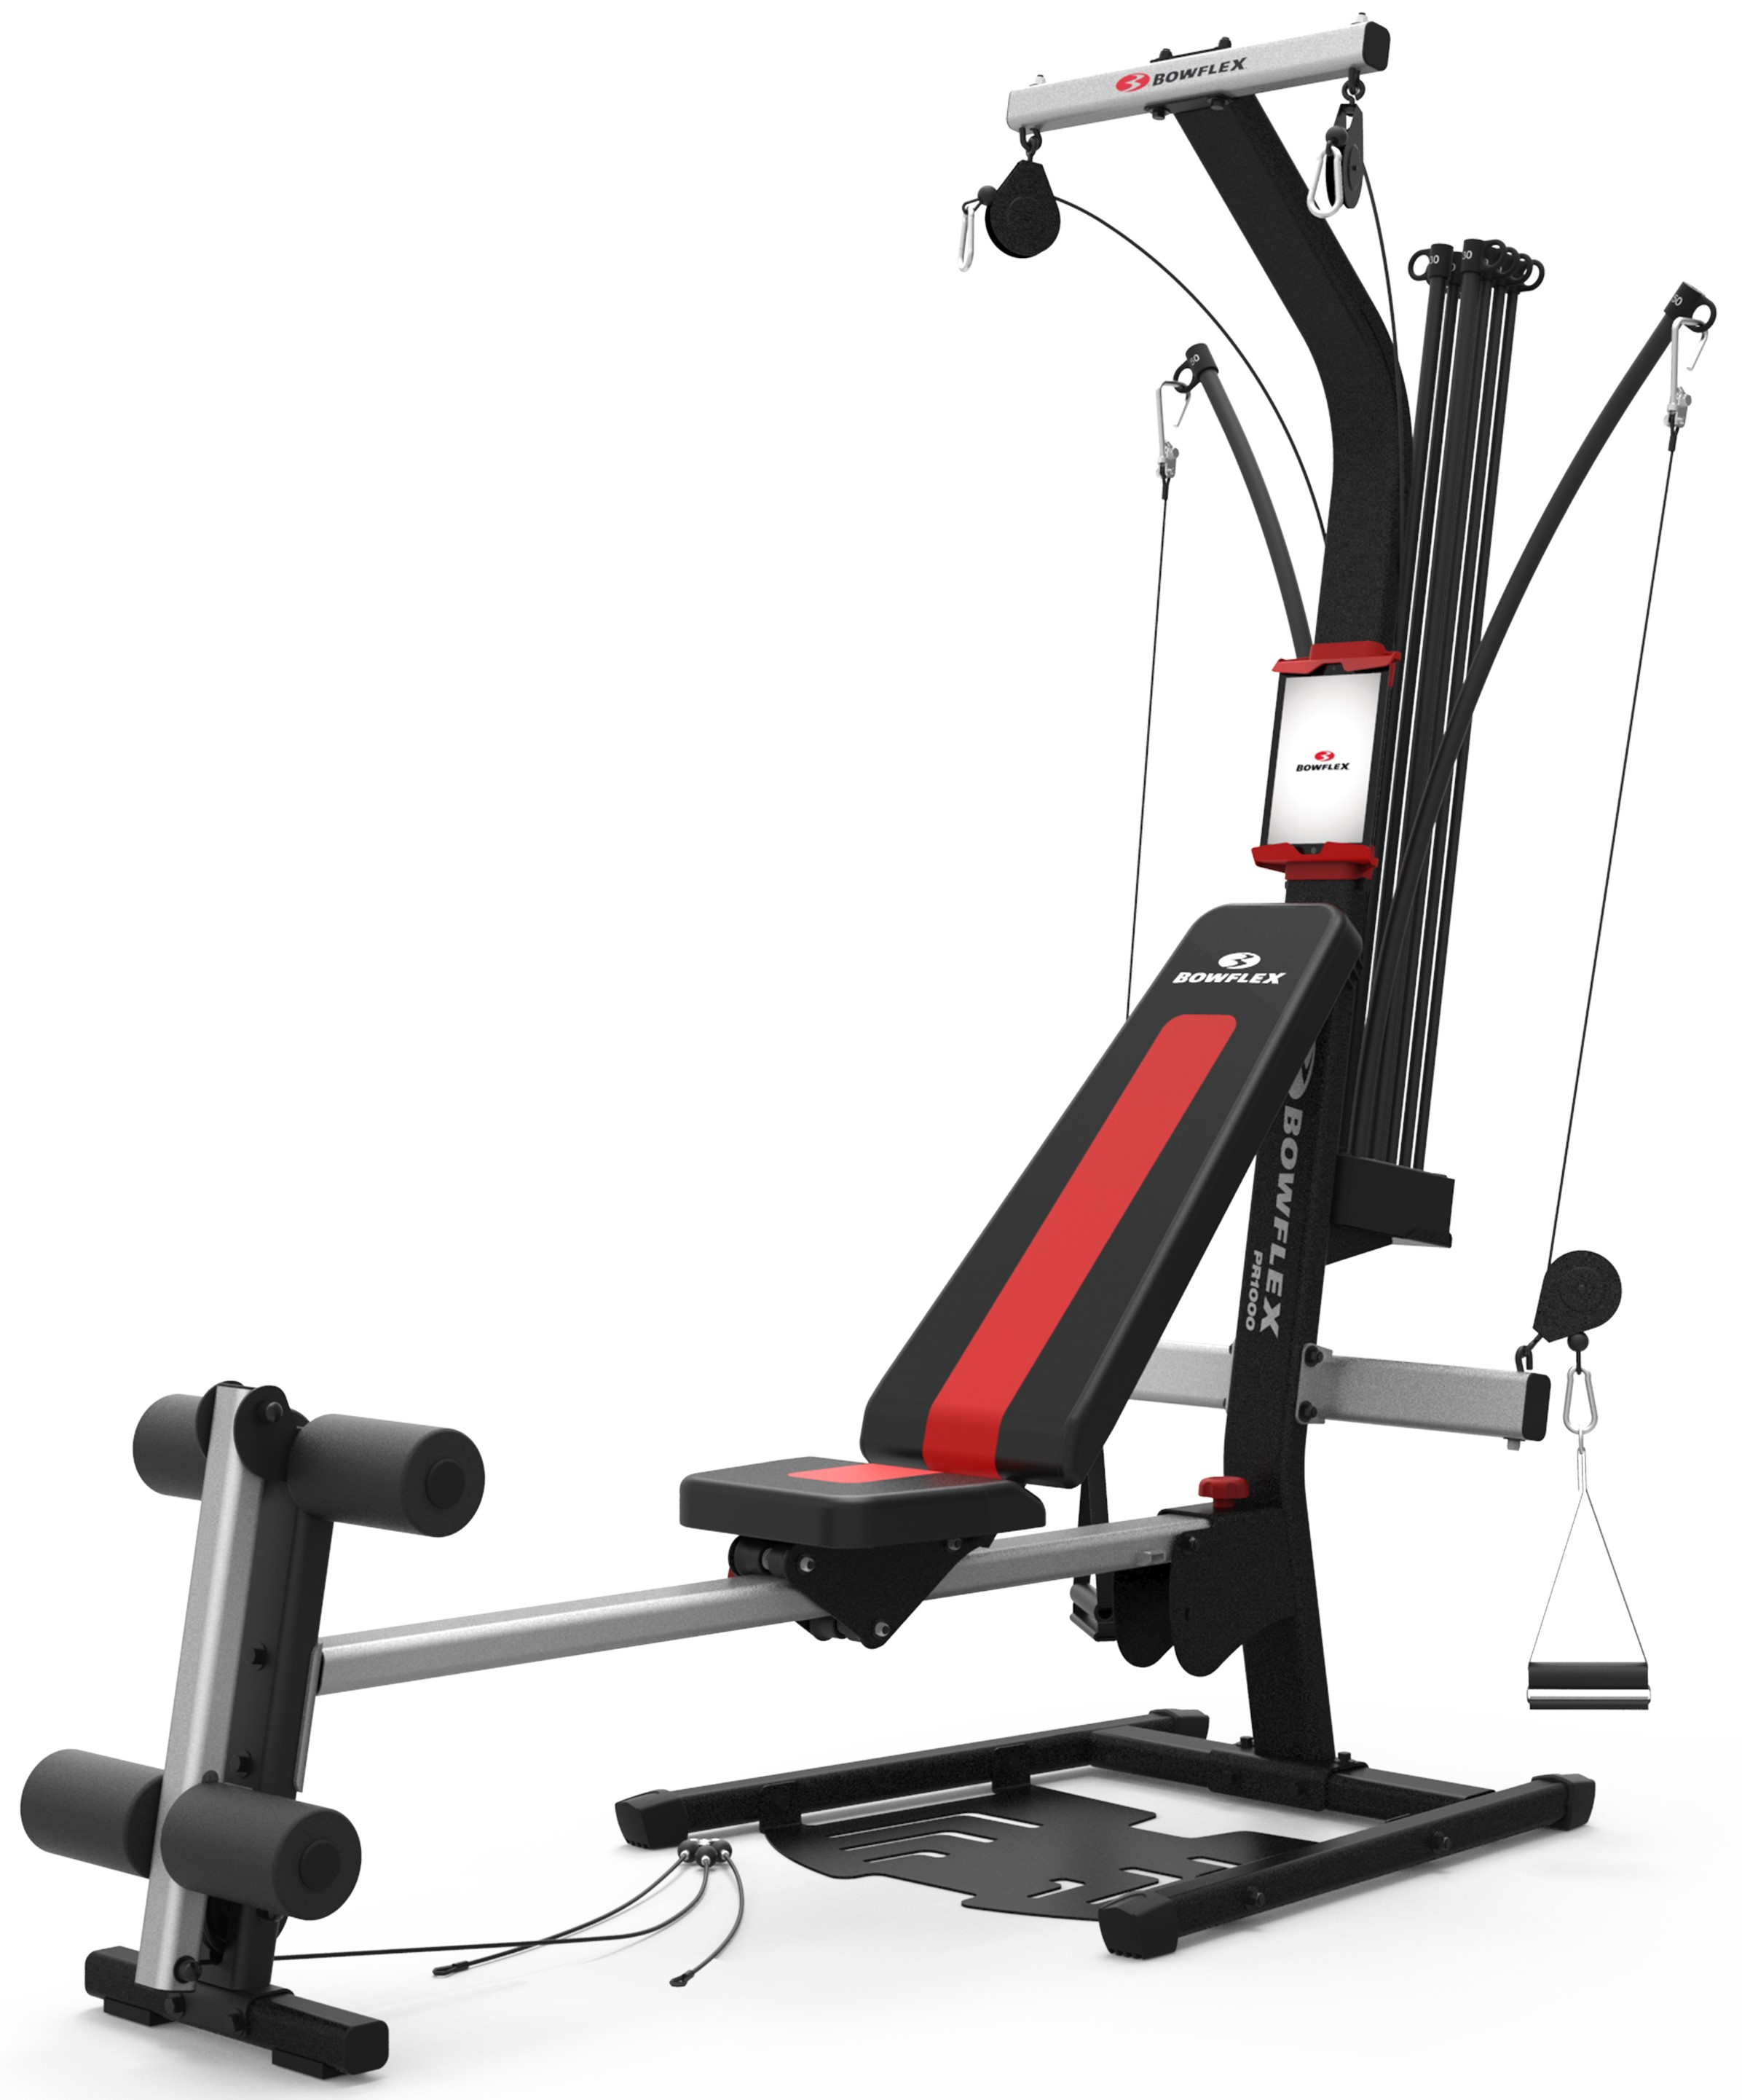 Bowflex pr1000 home gym with 25 exercises and 200 lbs. power rod